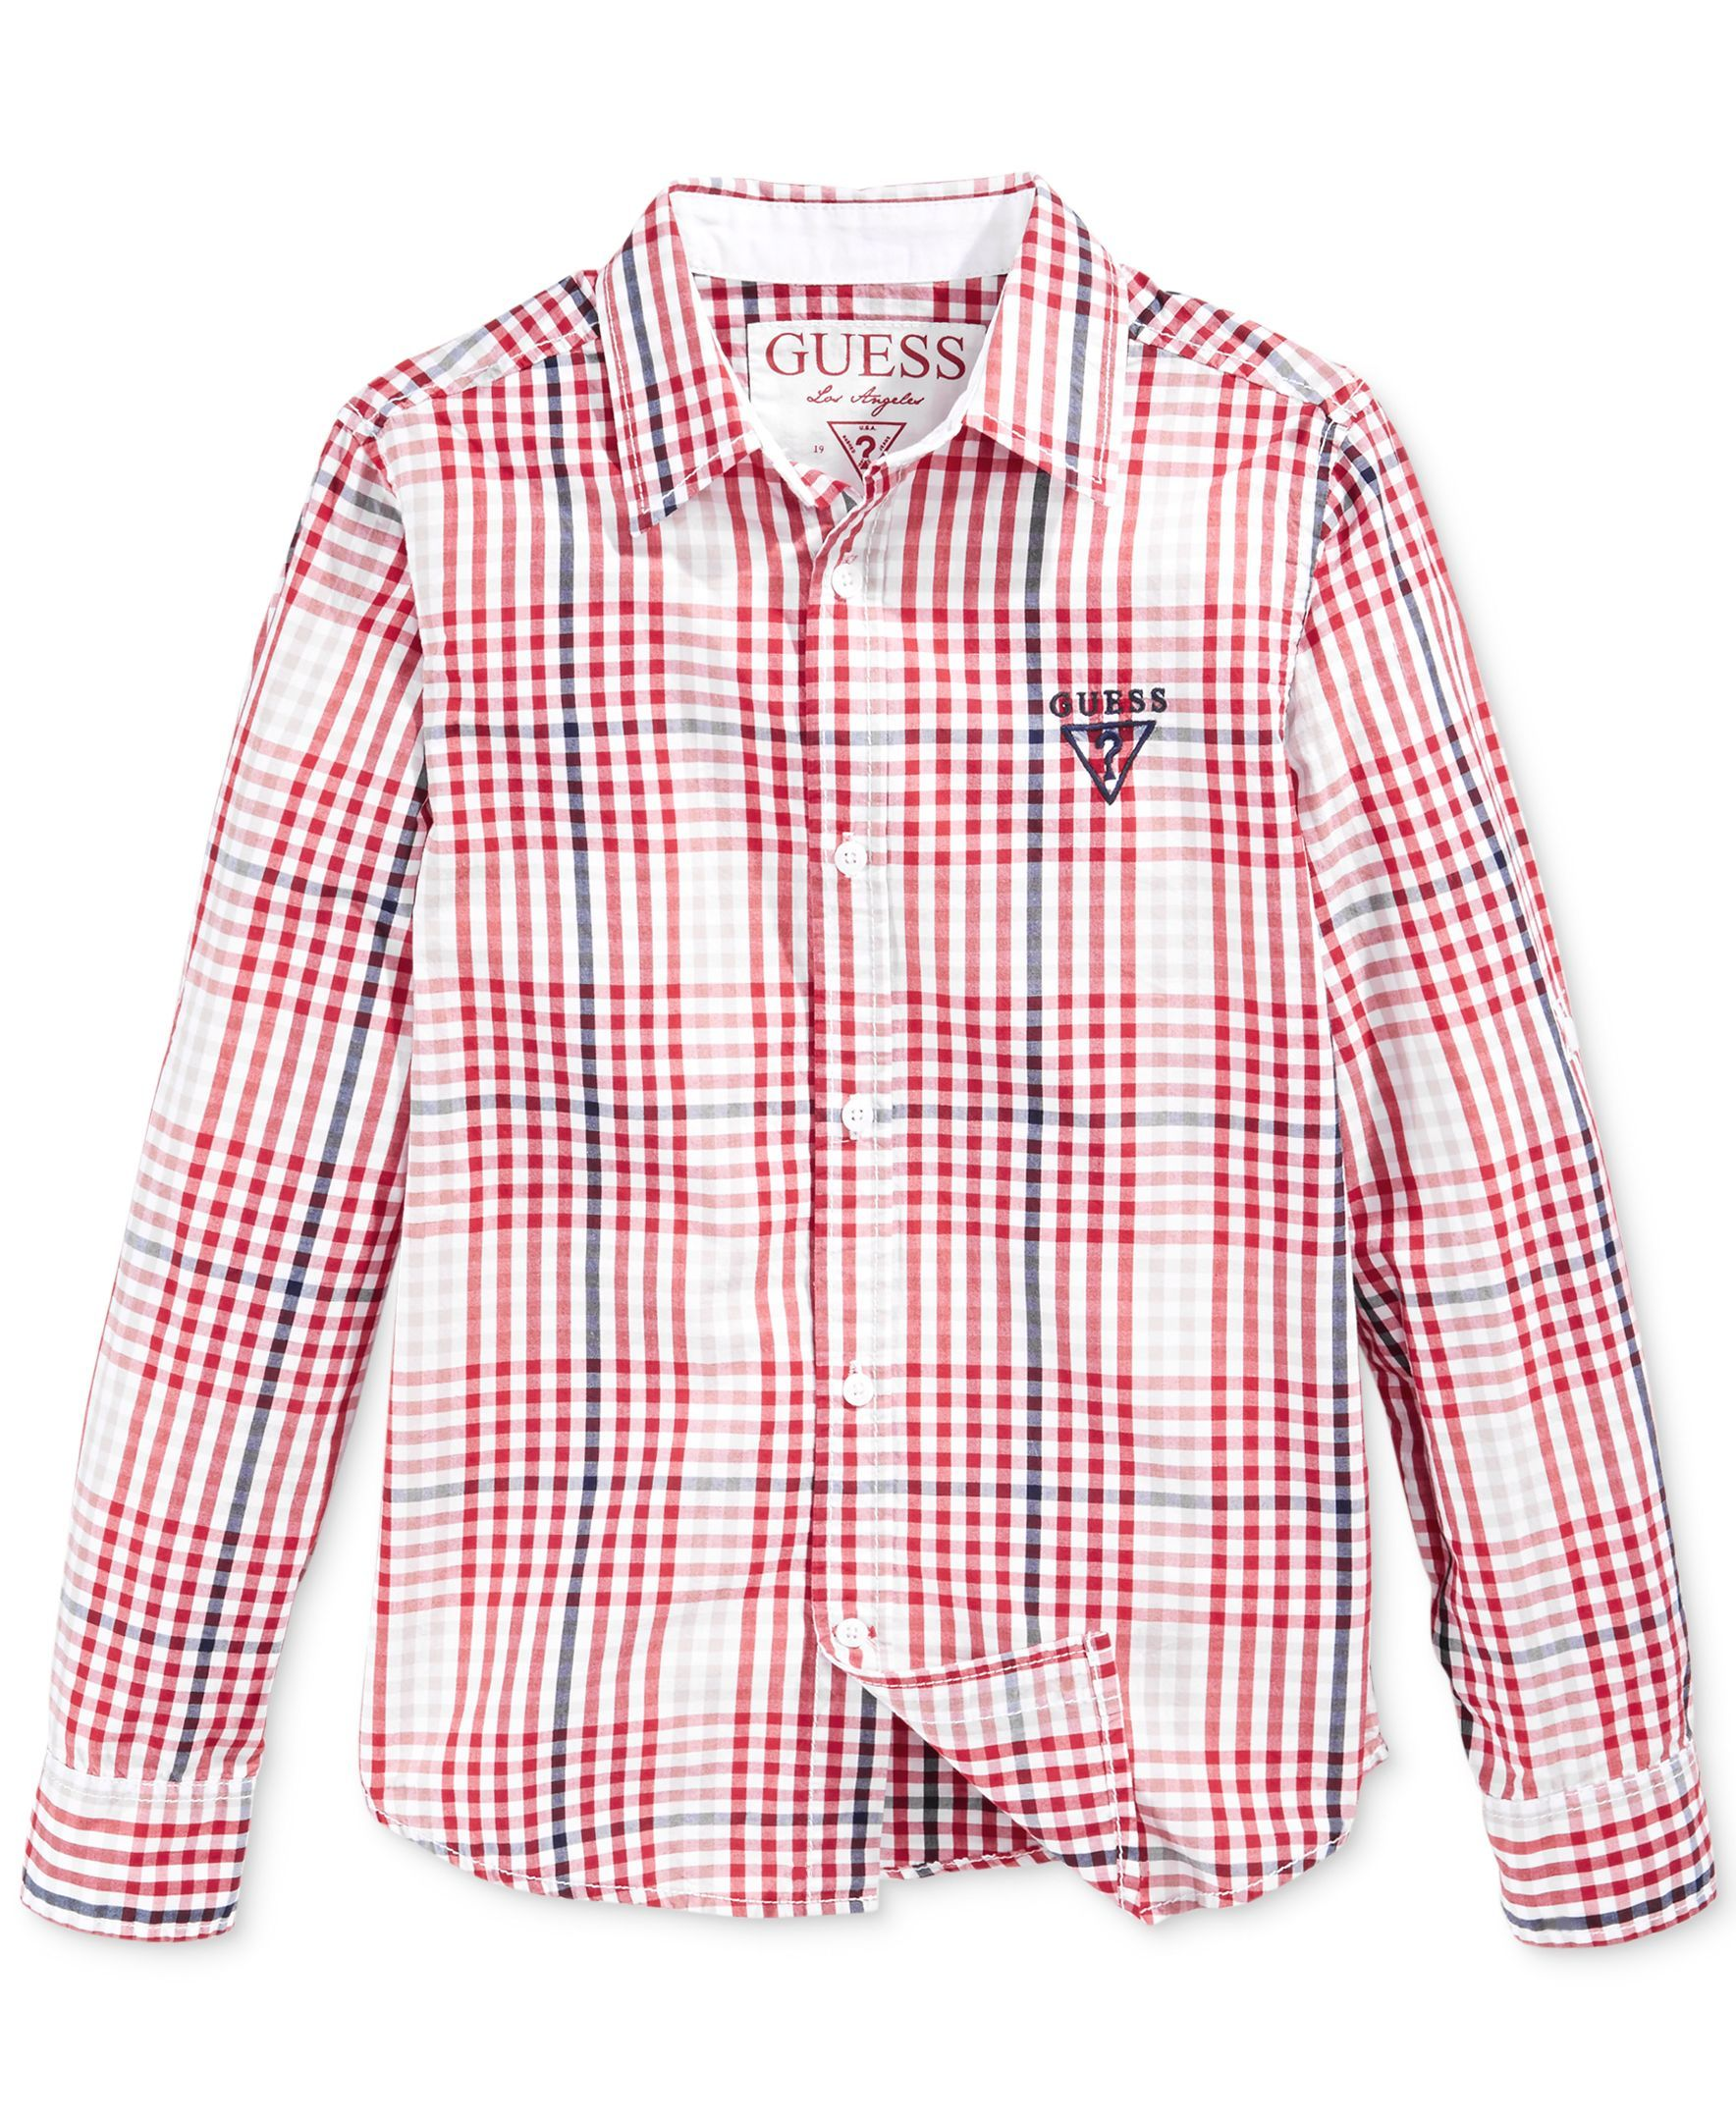 Guess Little Boys Gingham Shirt Products Pinterest